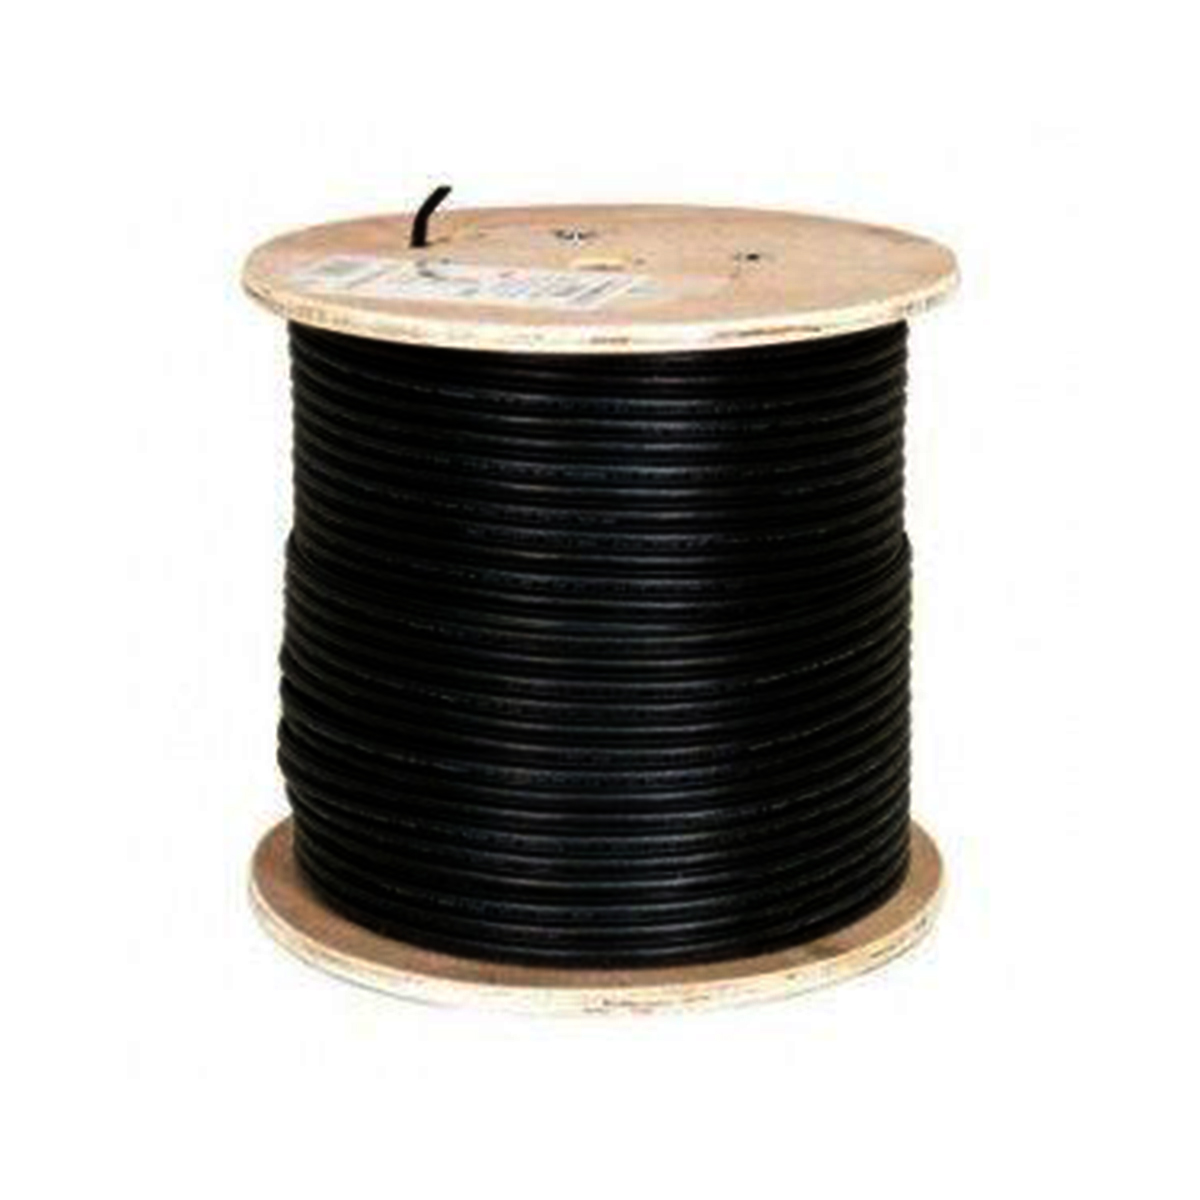 Cable CAT 5e Outdoor Wireplus